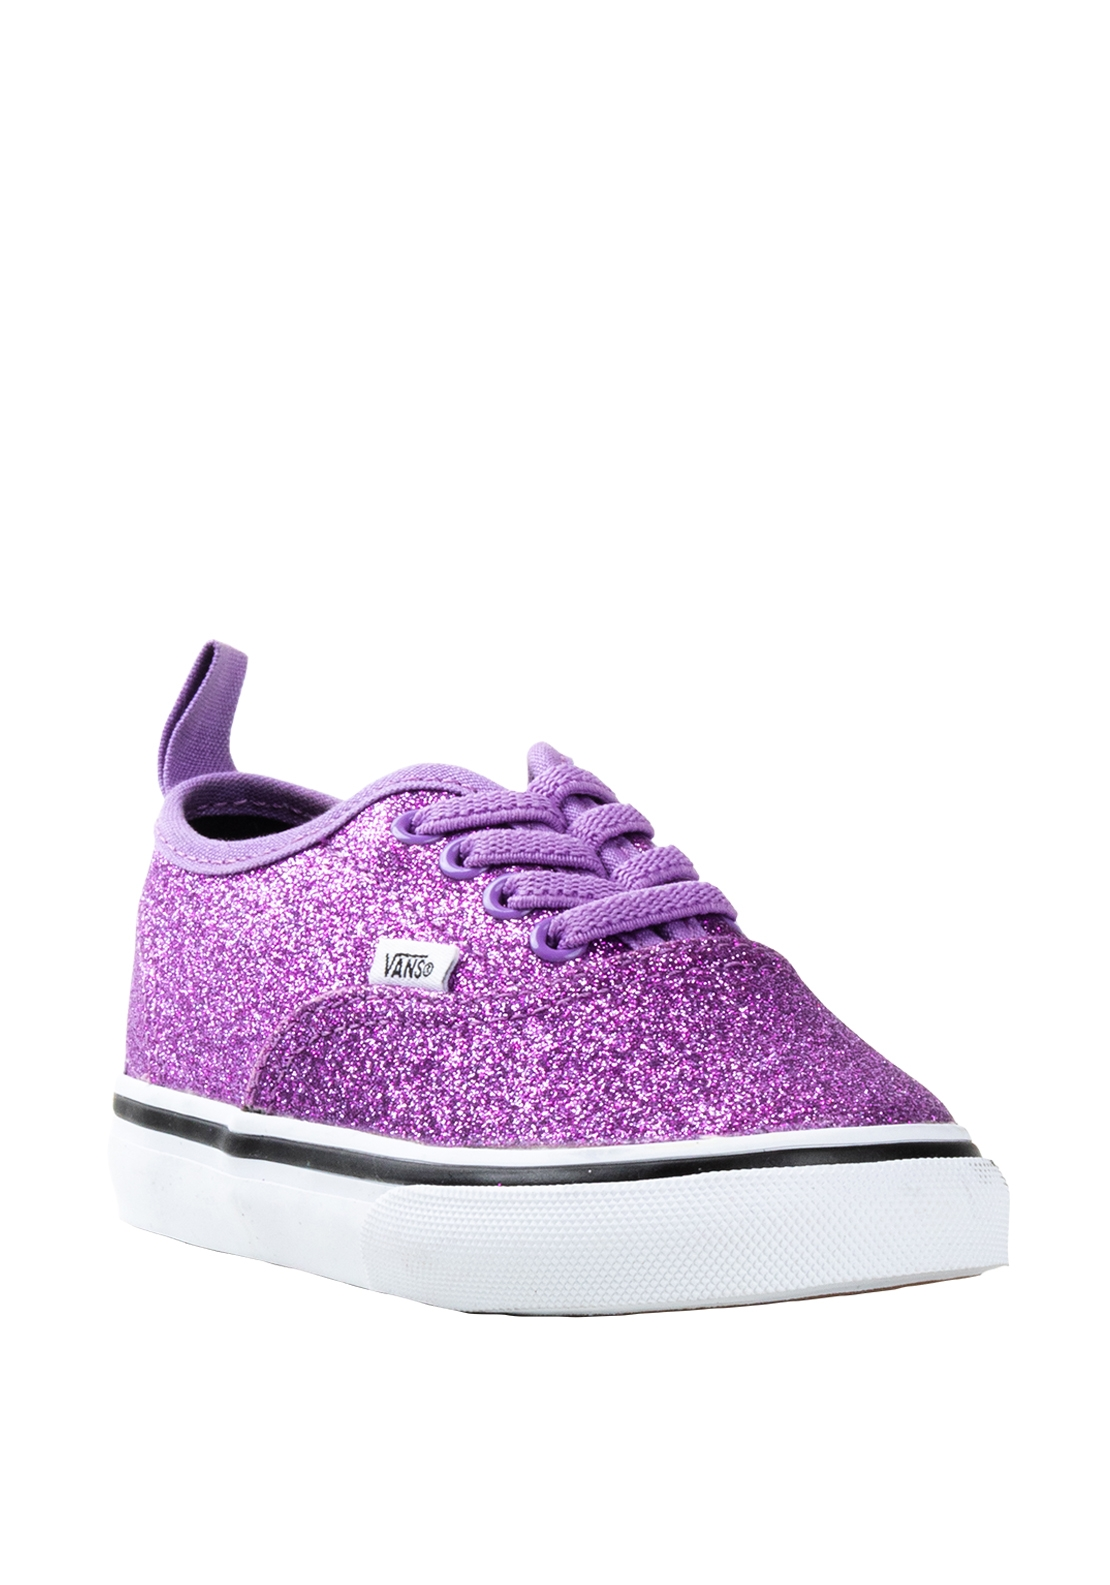 Vans Baby Girls Glitter Lace up